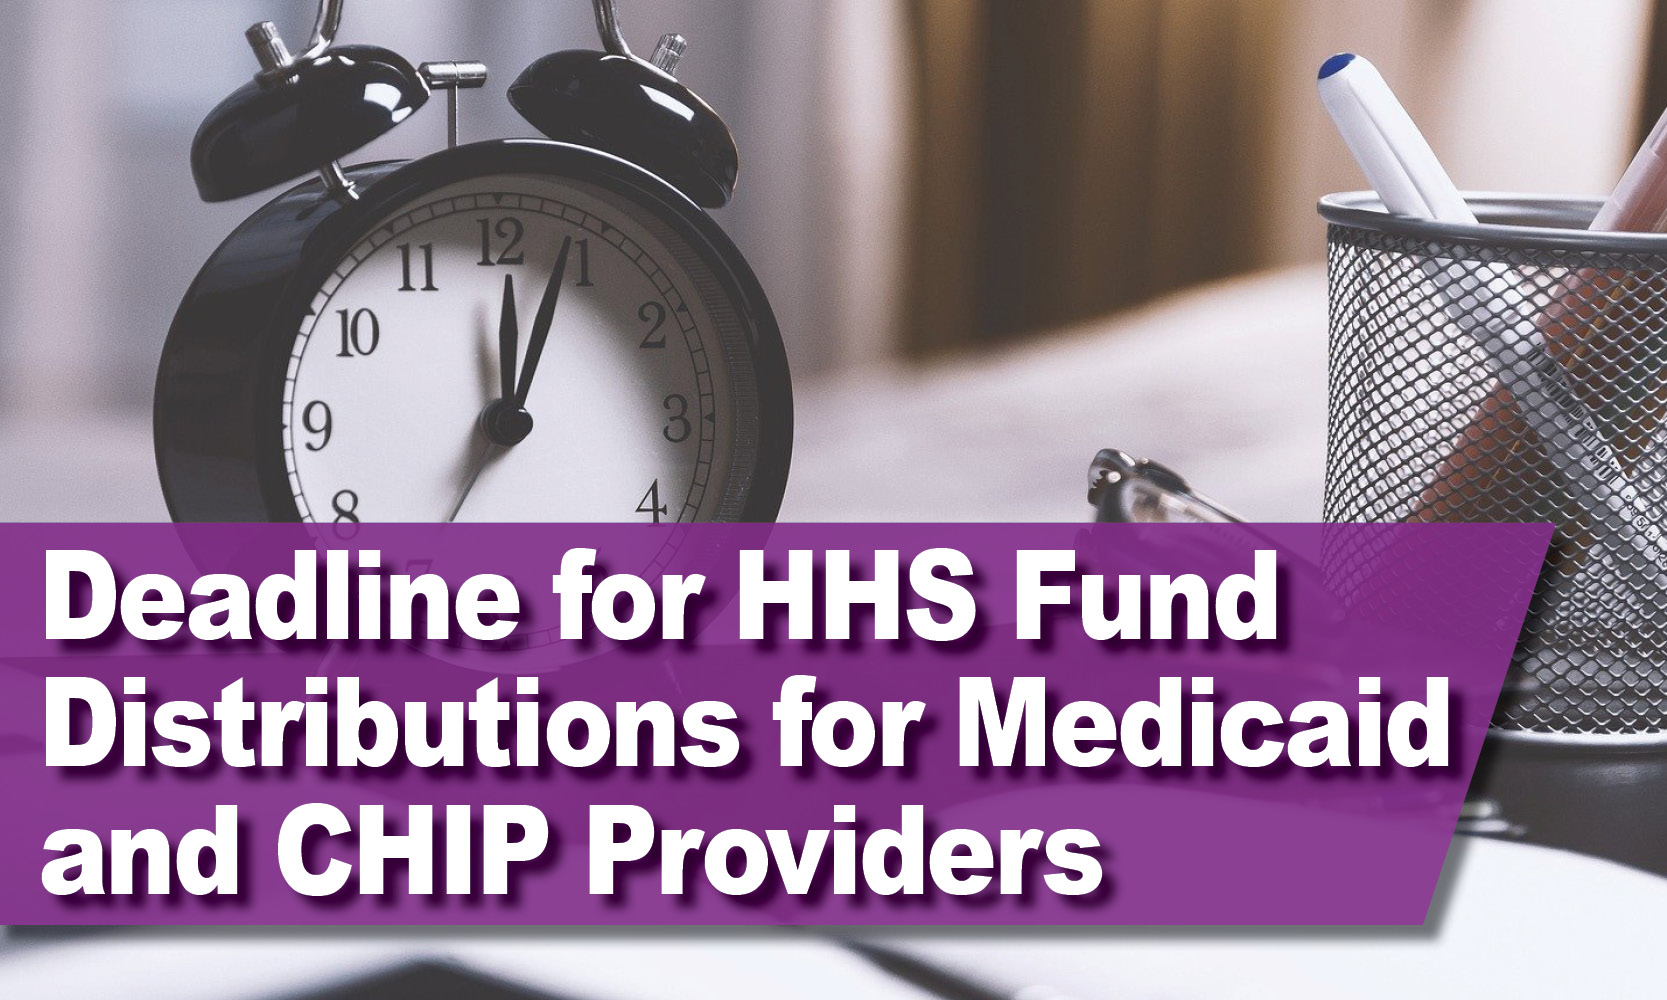 Deadline for HHS Fund Distributions for Medicaid and CHIP Providers